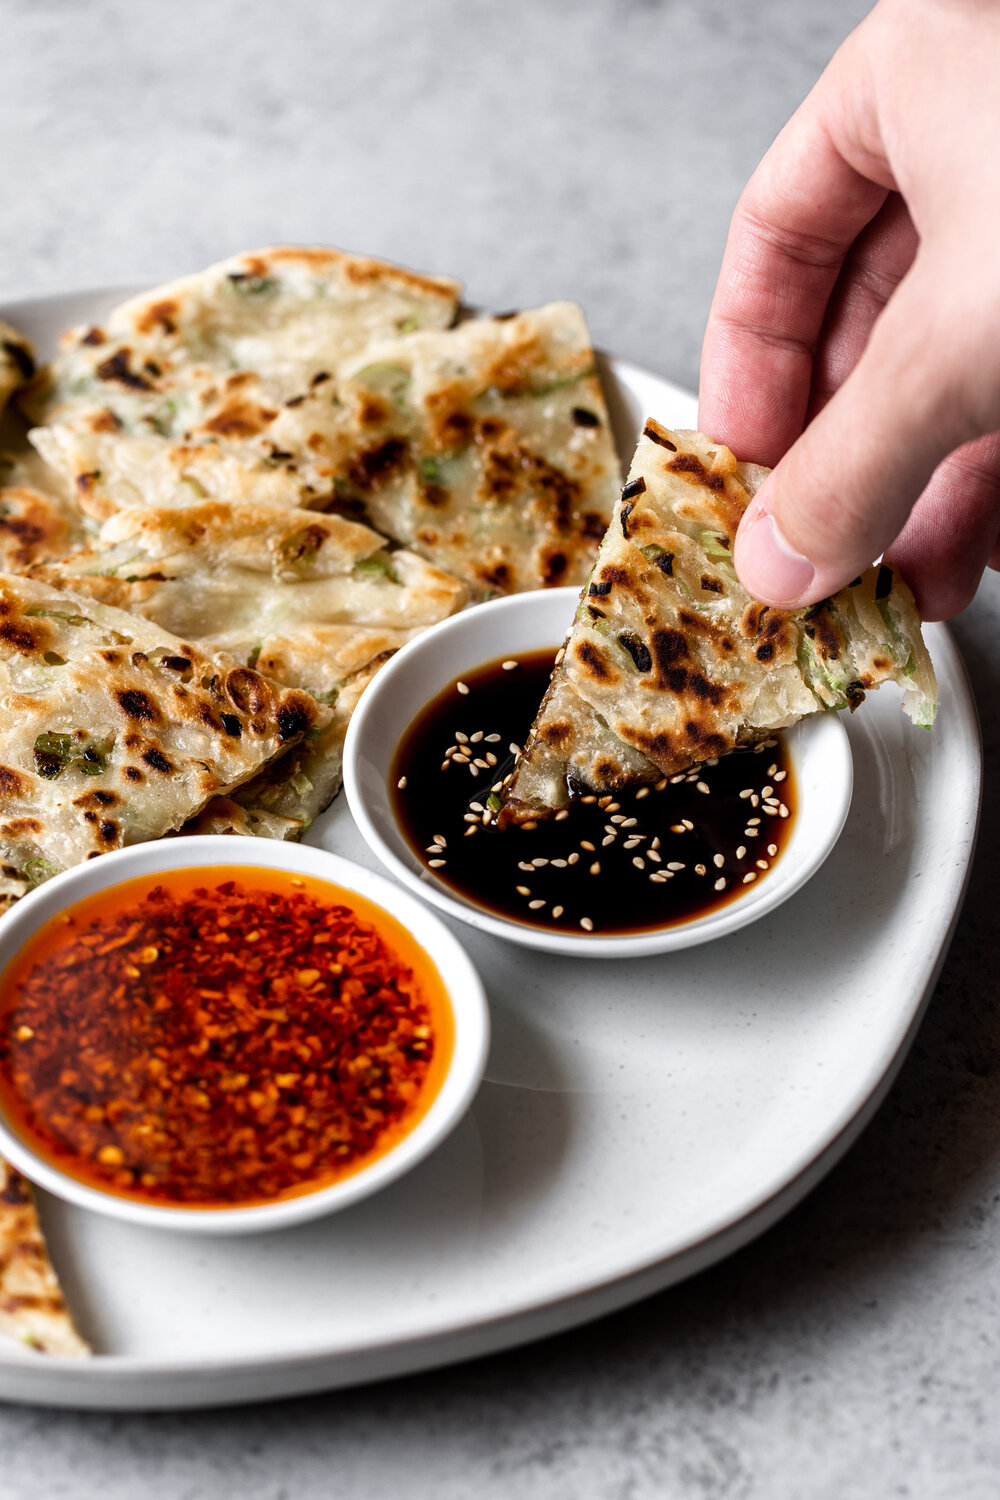 Chinese-style Scallion Pancakes cooked in a skillet dipping piece in Chinese black vinegar